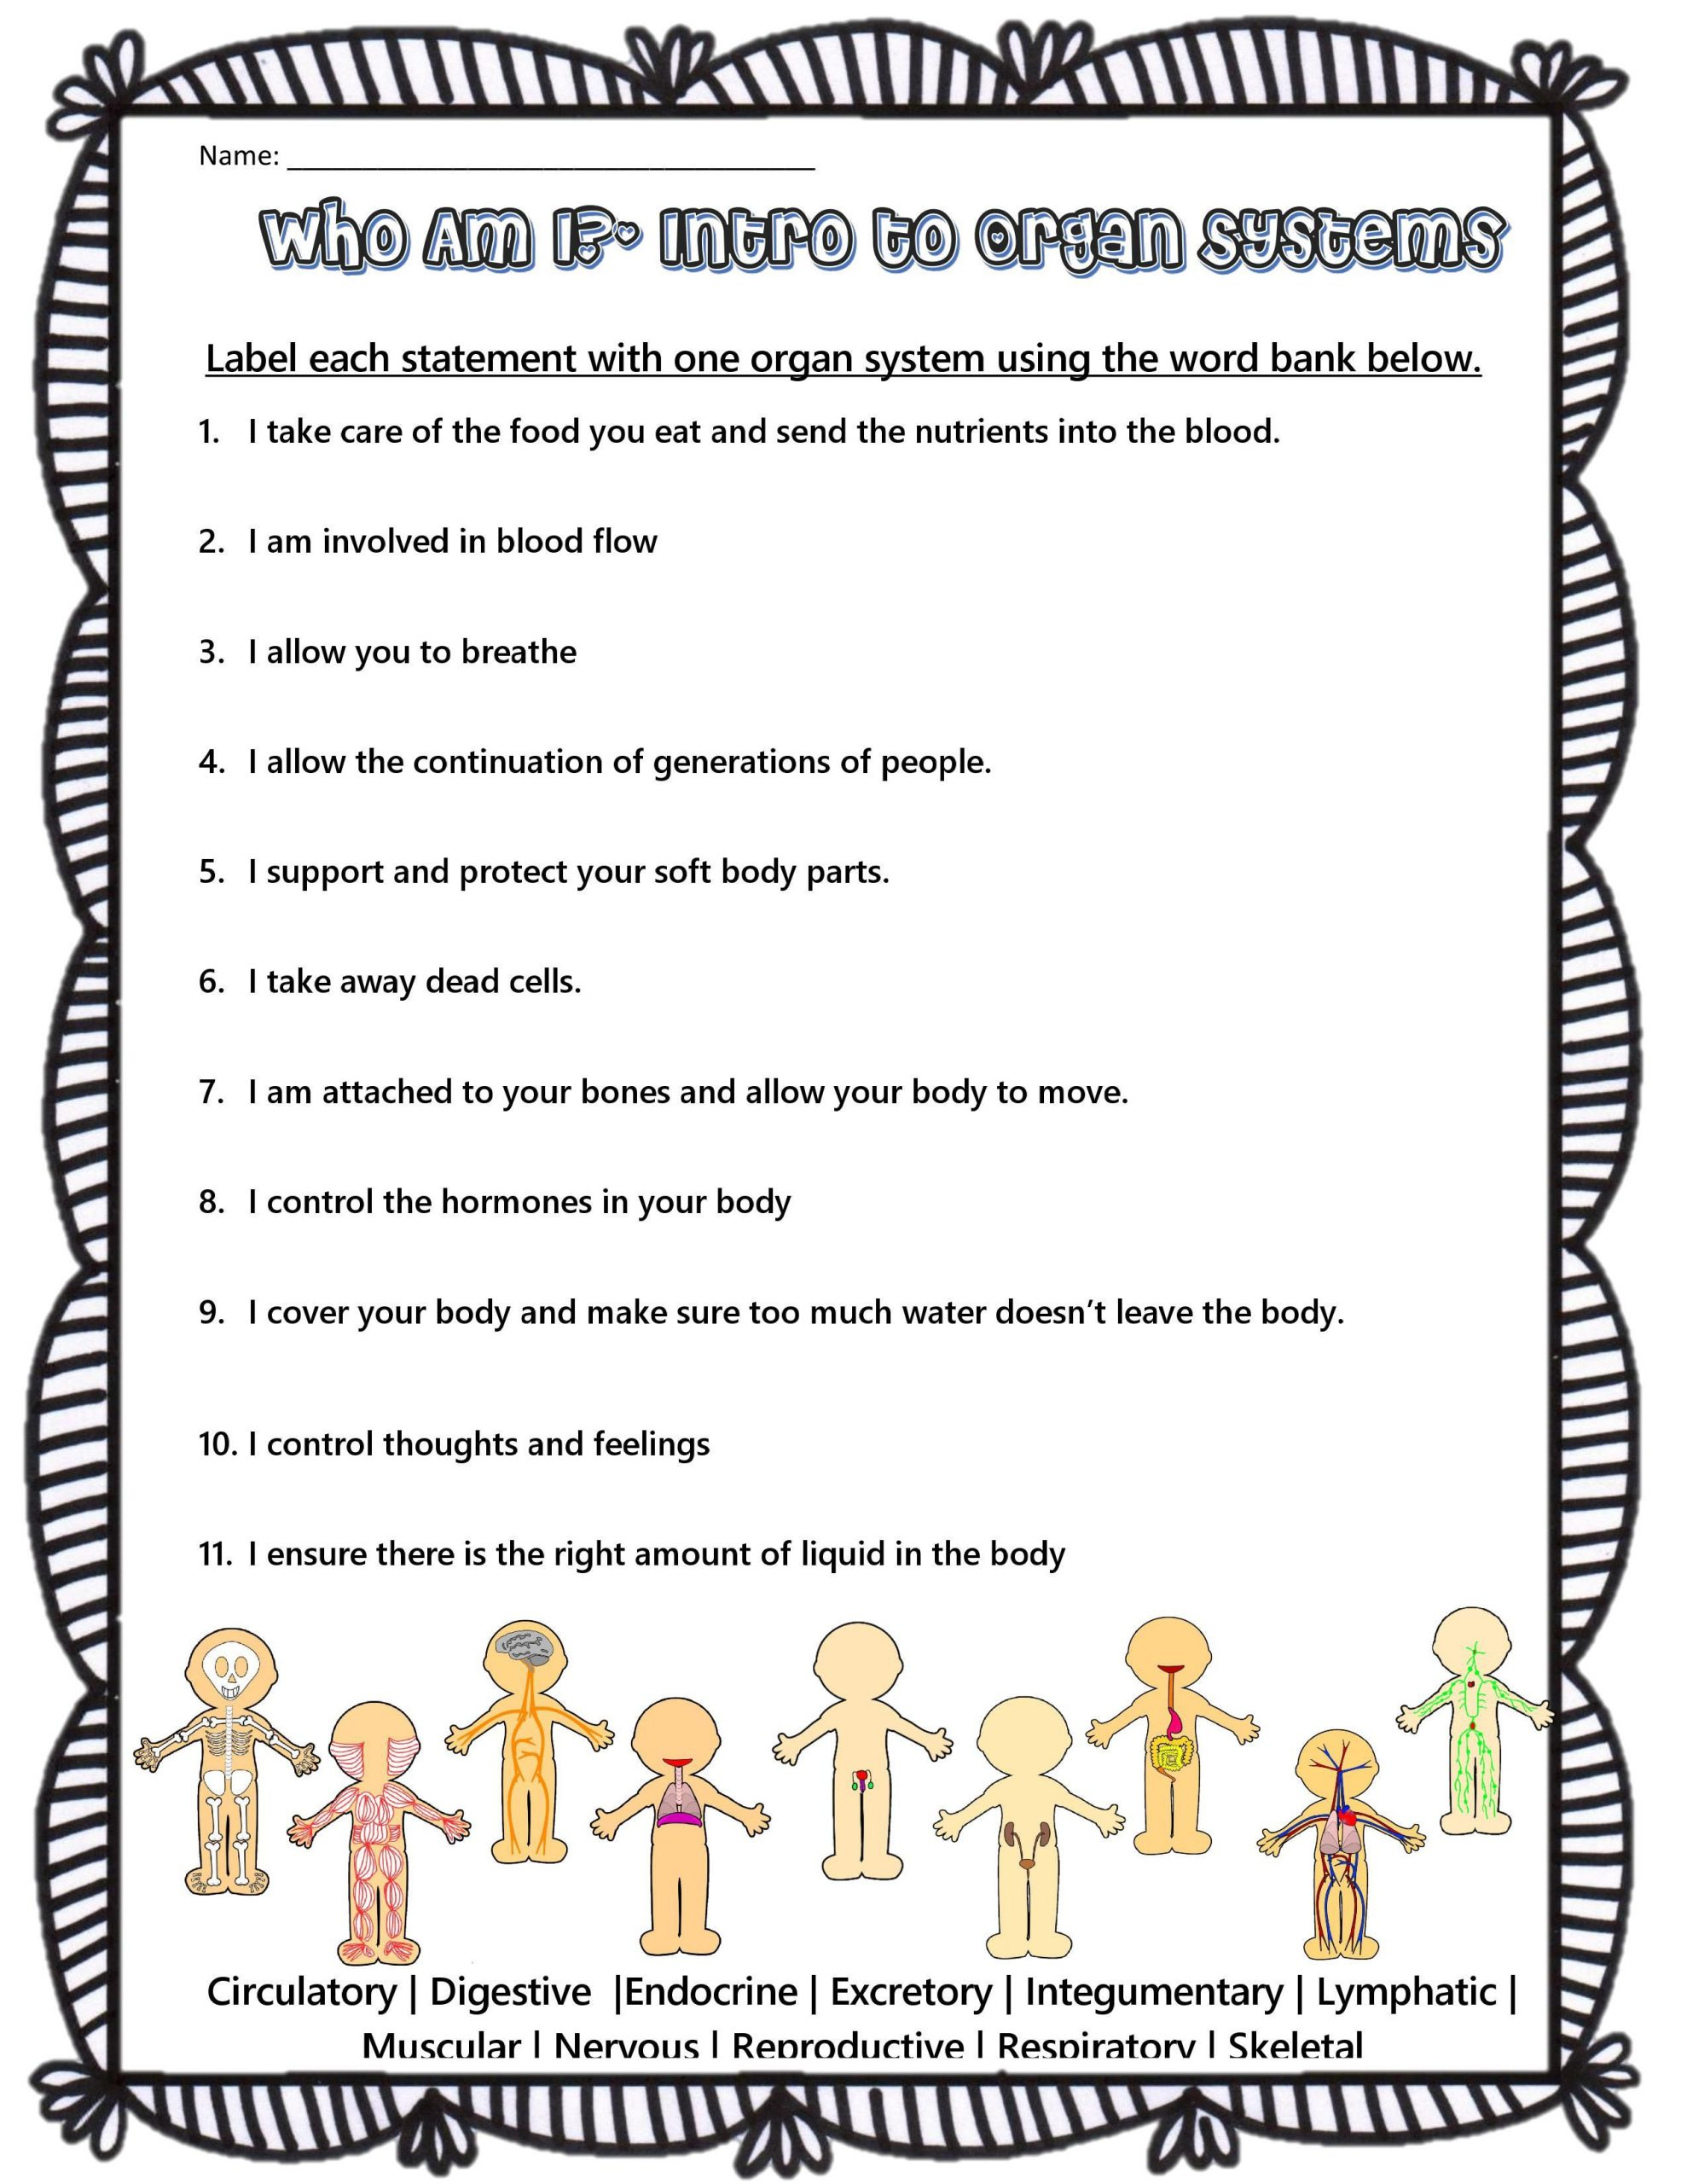 3rd Grade Human Body Worksheets Science Worksheets for Grade 3 Human Body